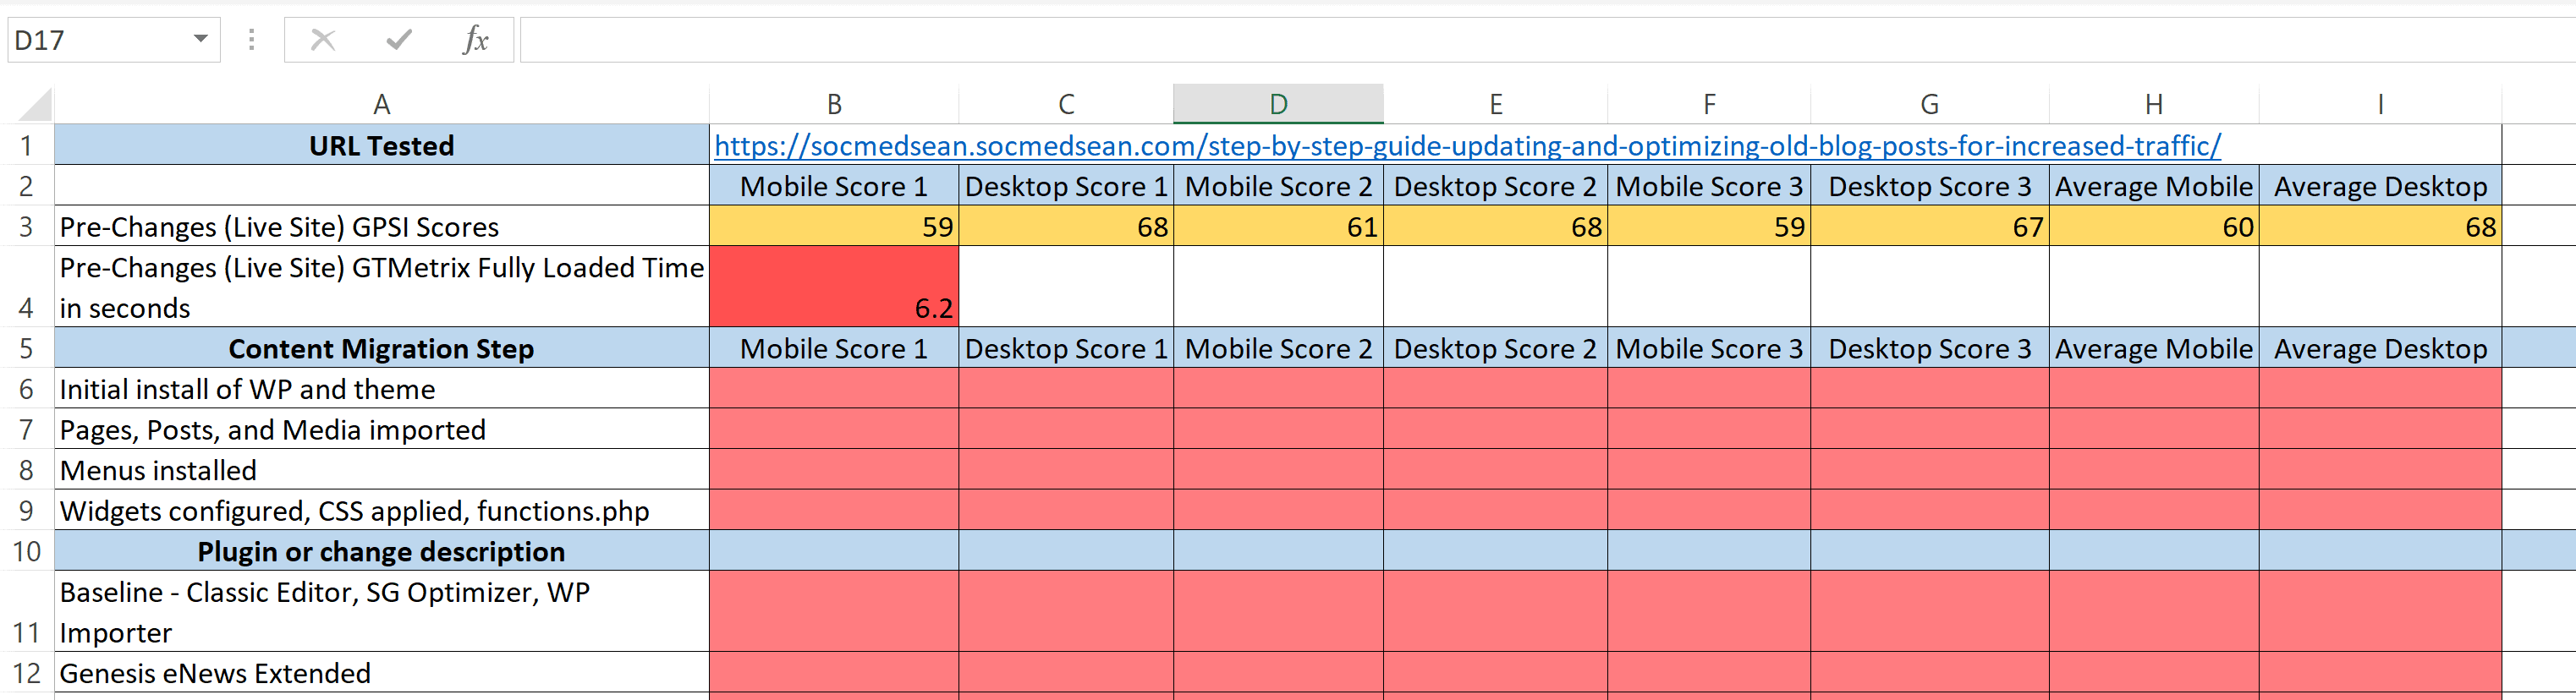 Your tracking spreadsheet should now have your initial values entered.